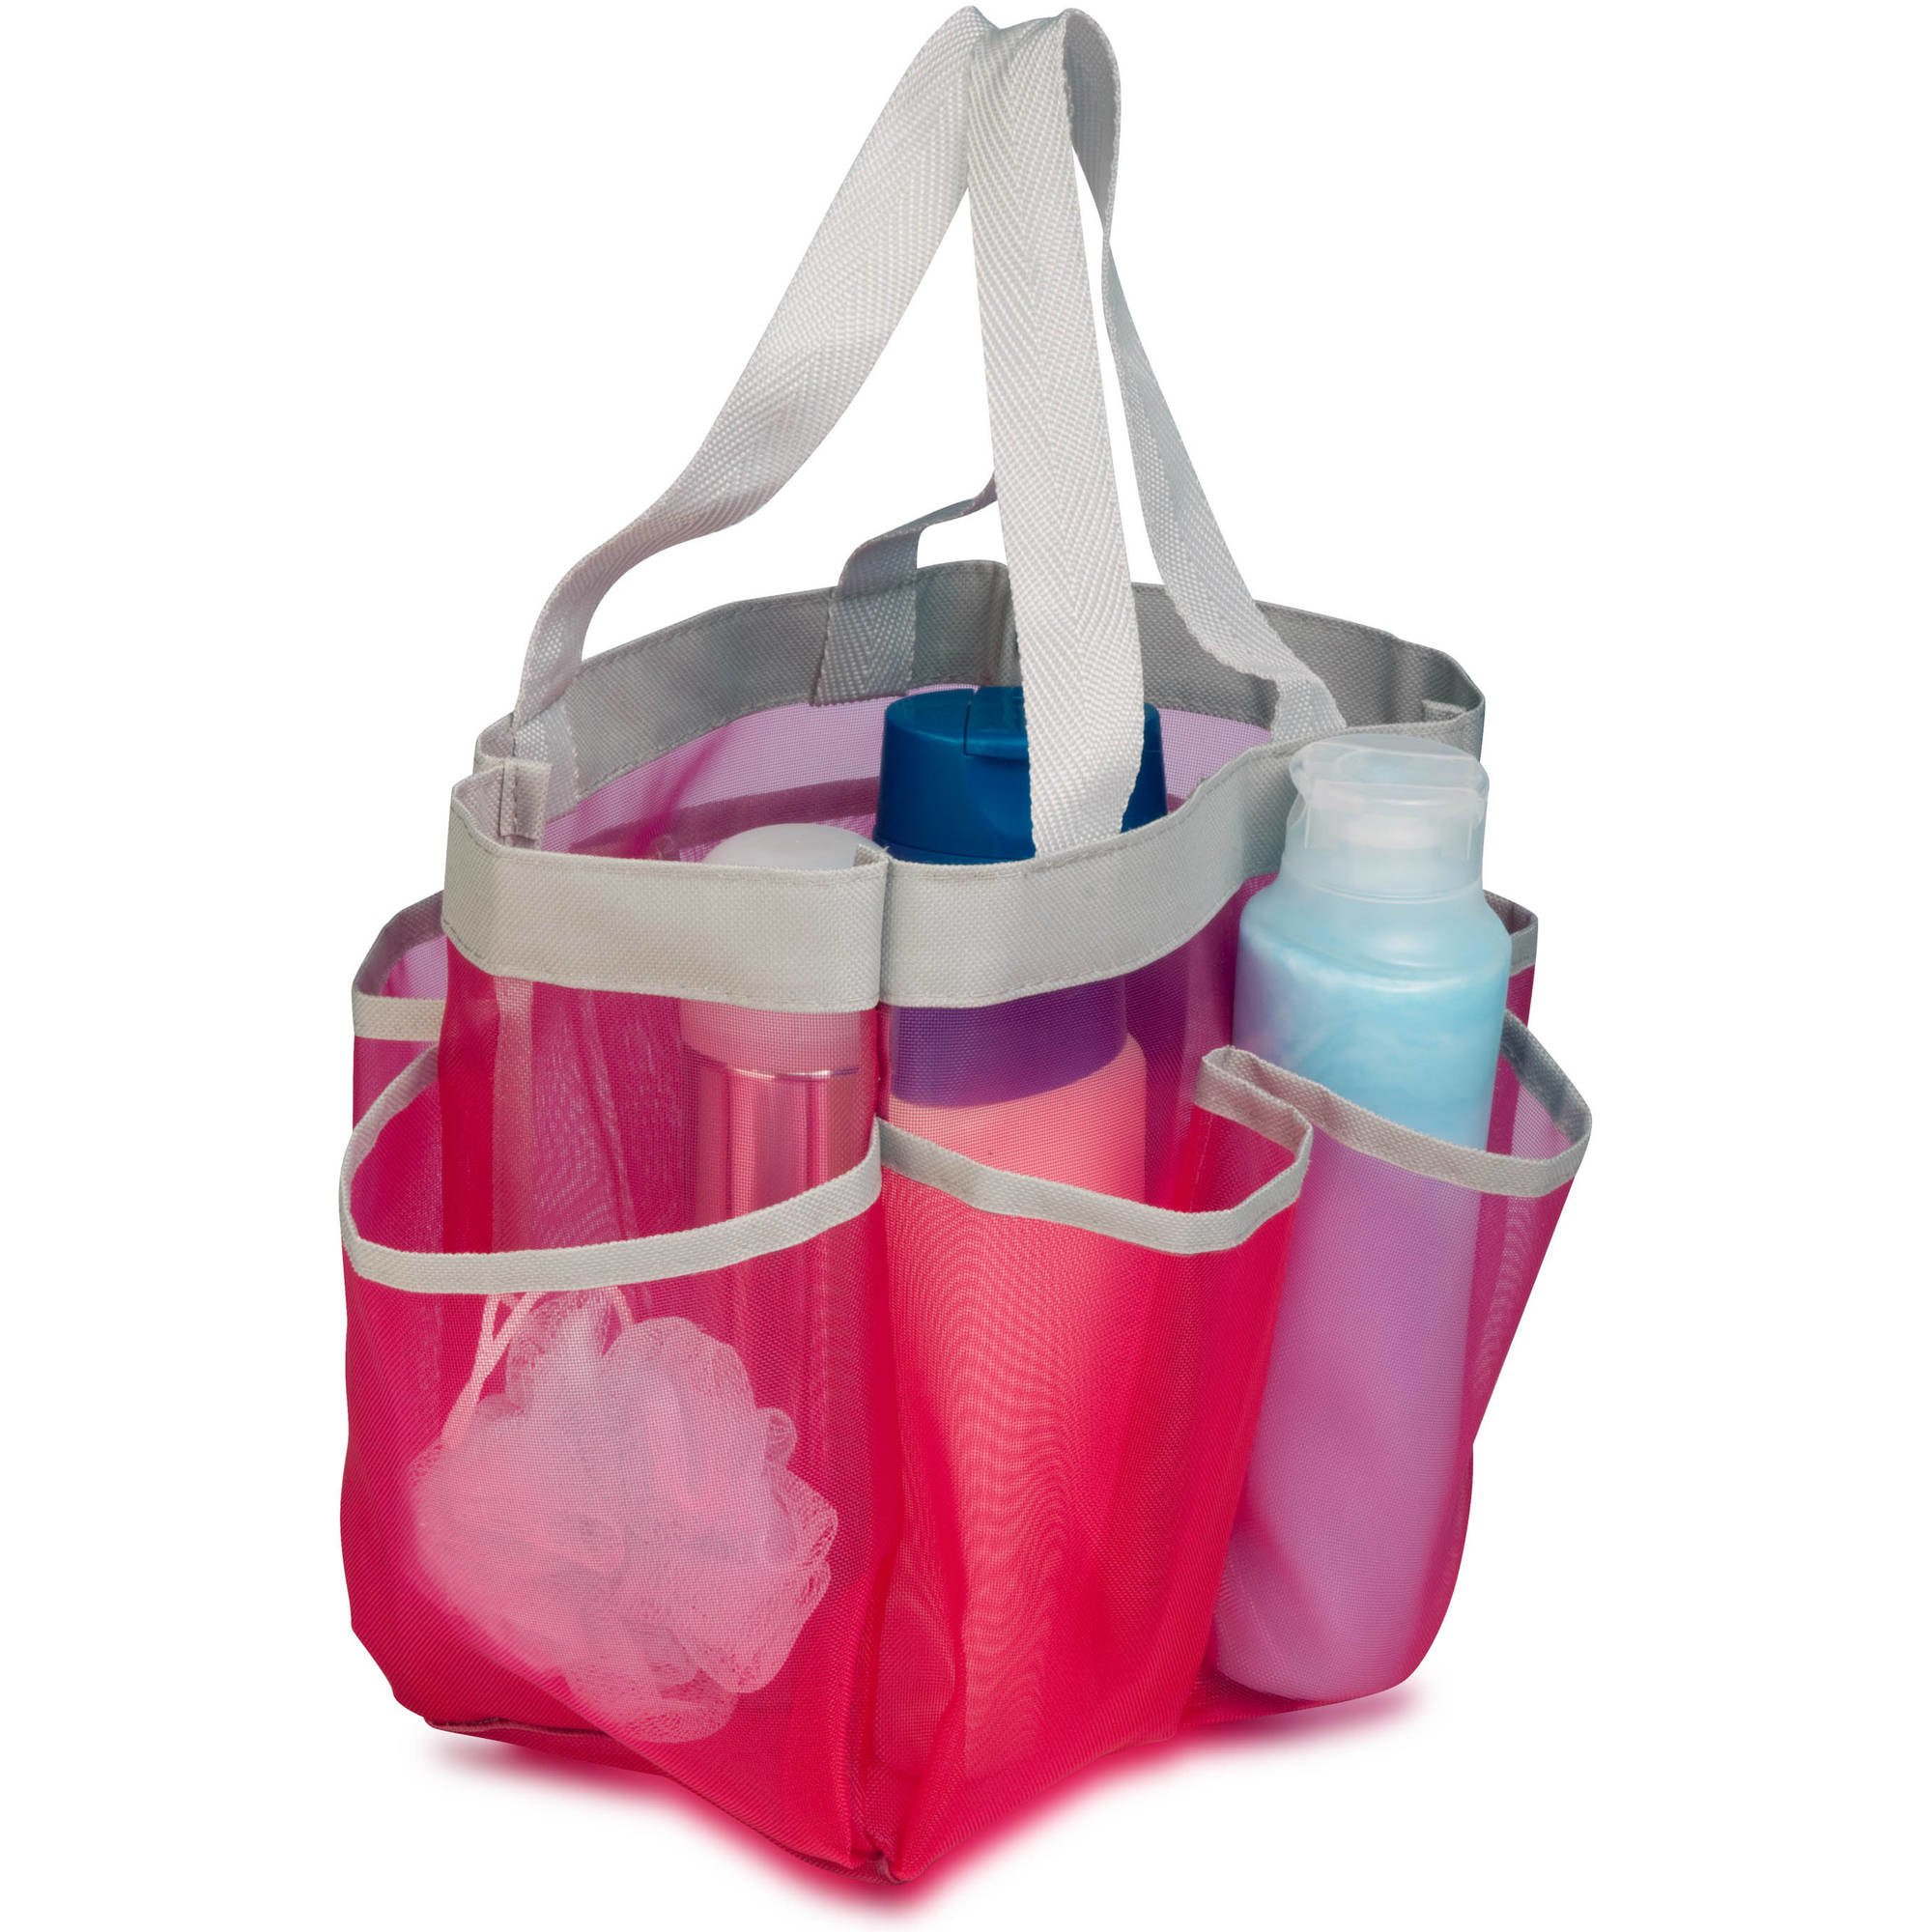 The mesh pink shower caddy with pockets all around the sides